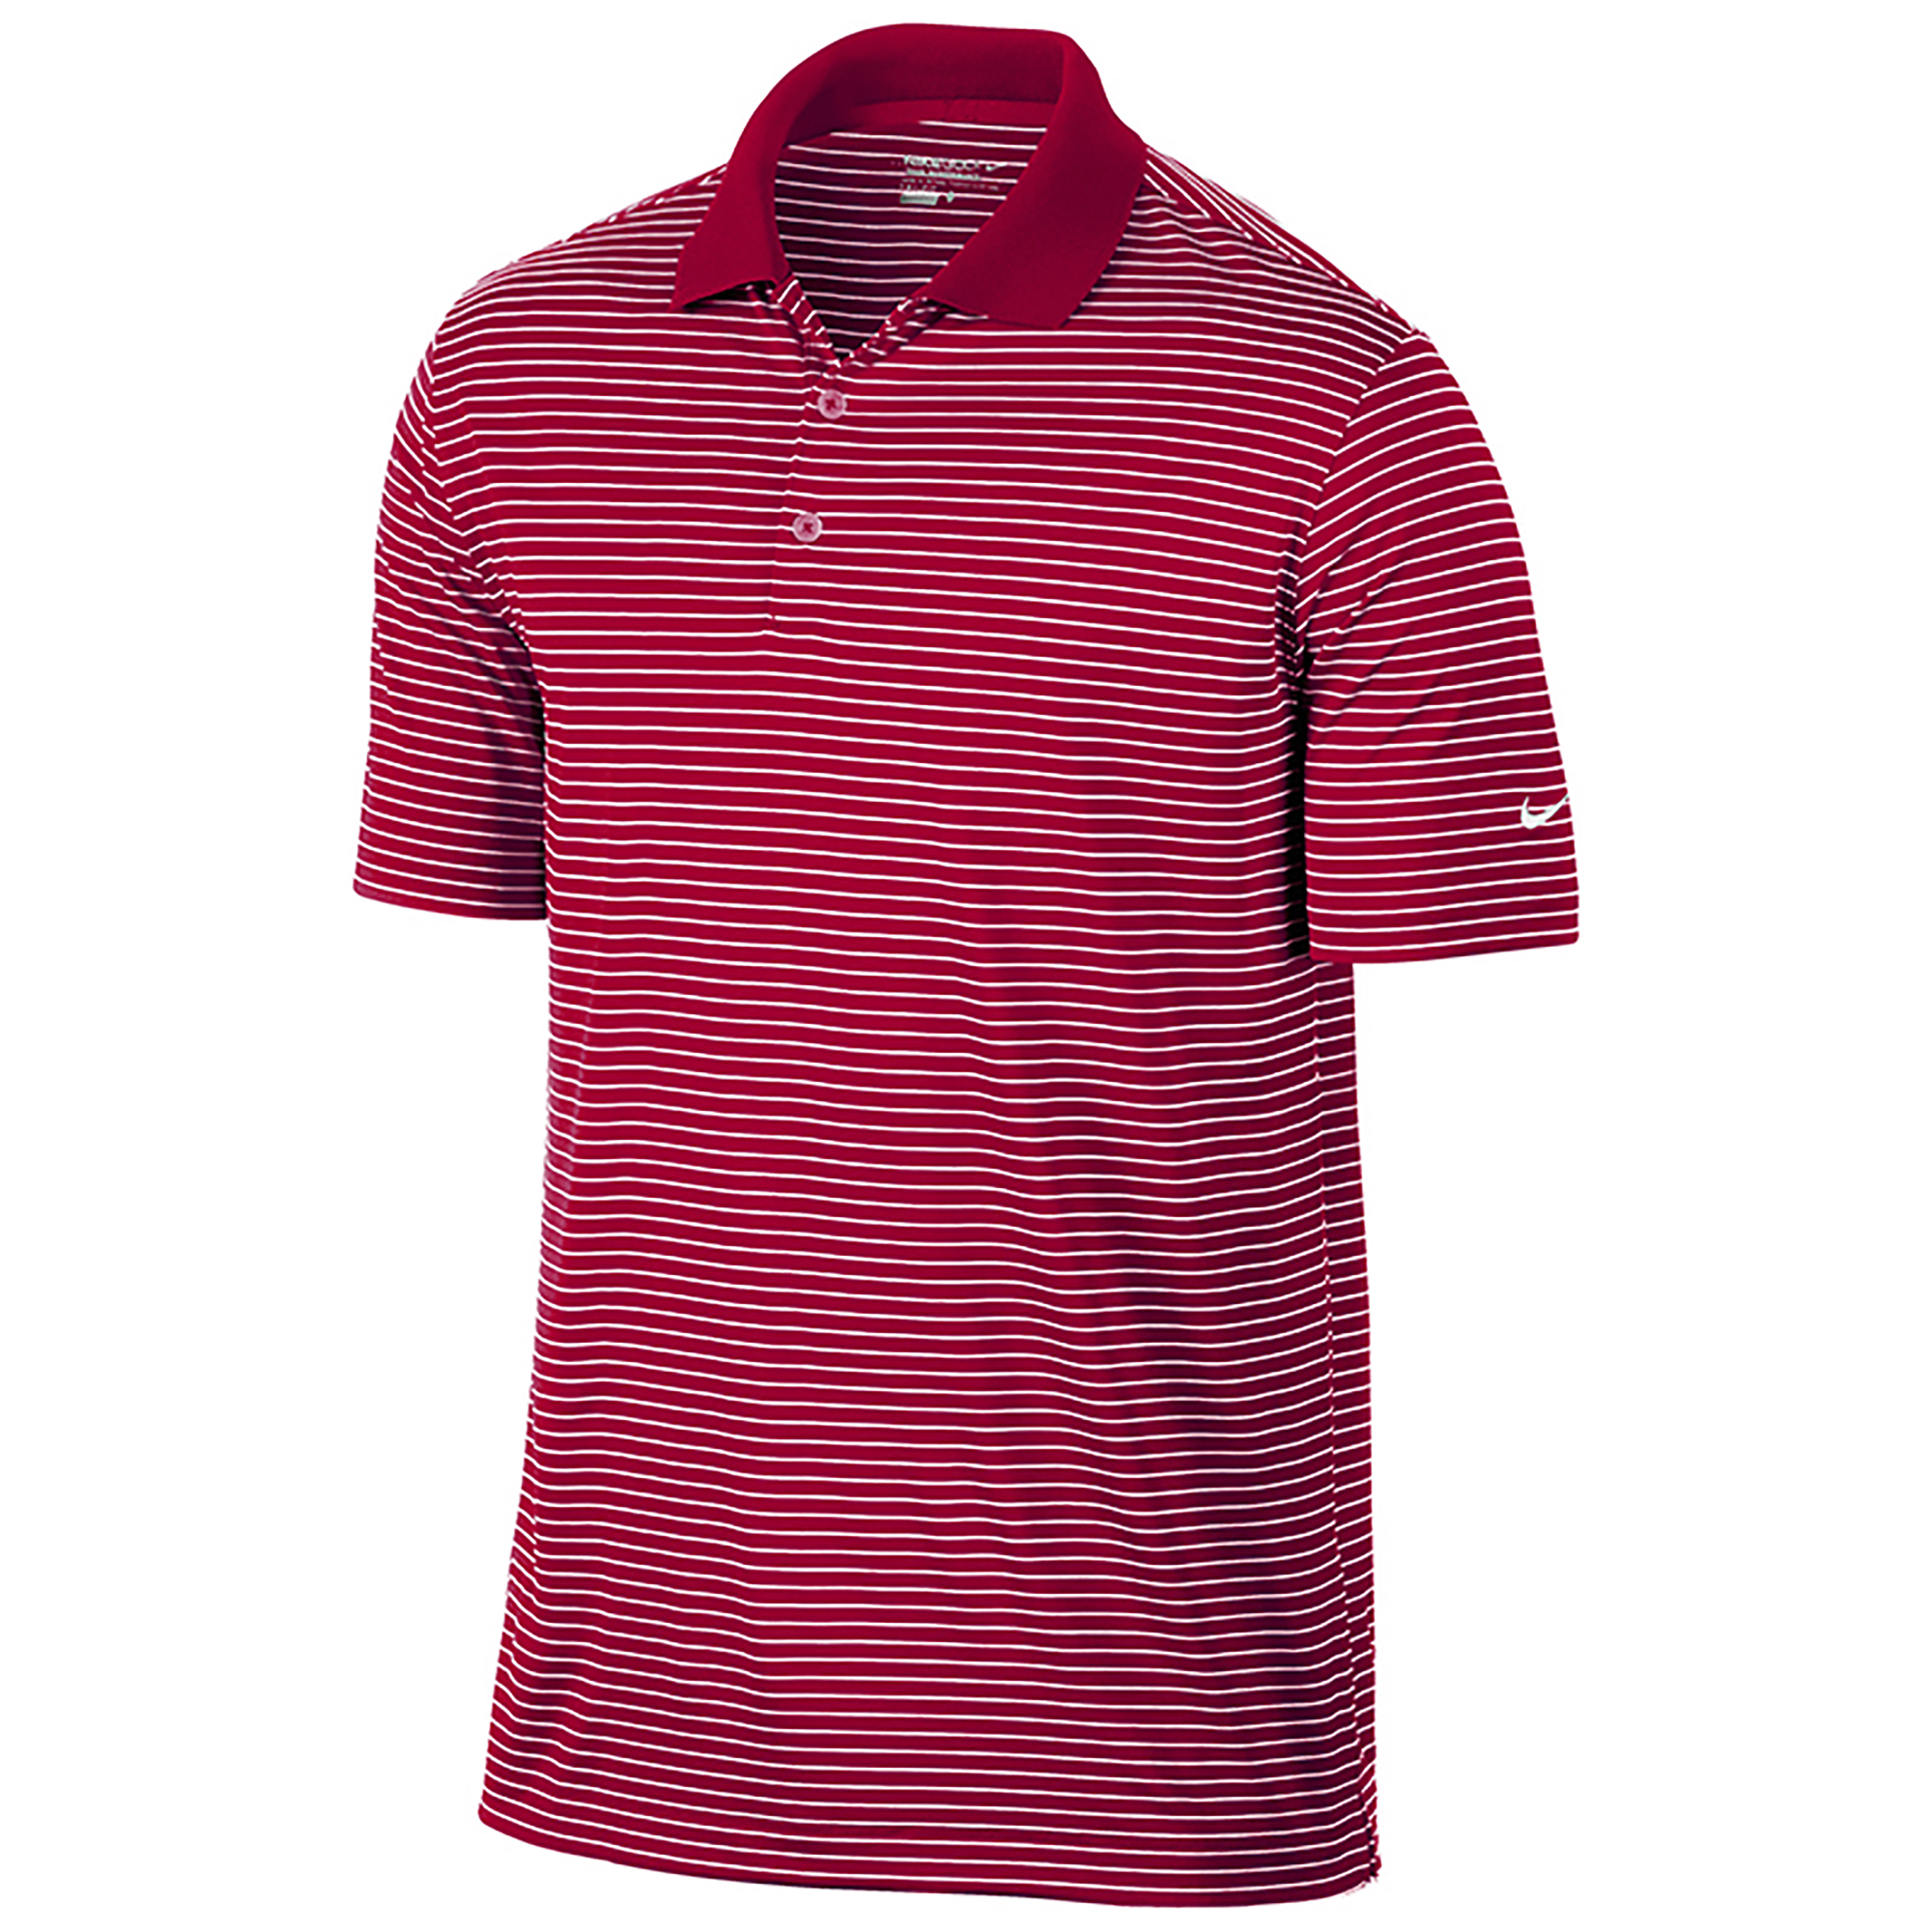 Nike golf mens victory striped solid knit short sleeve for Mens short sleeve patterned shirts